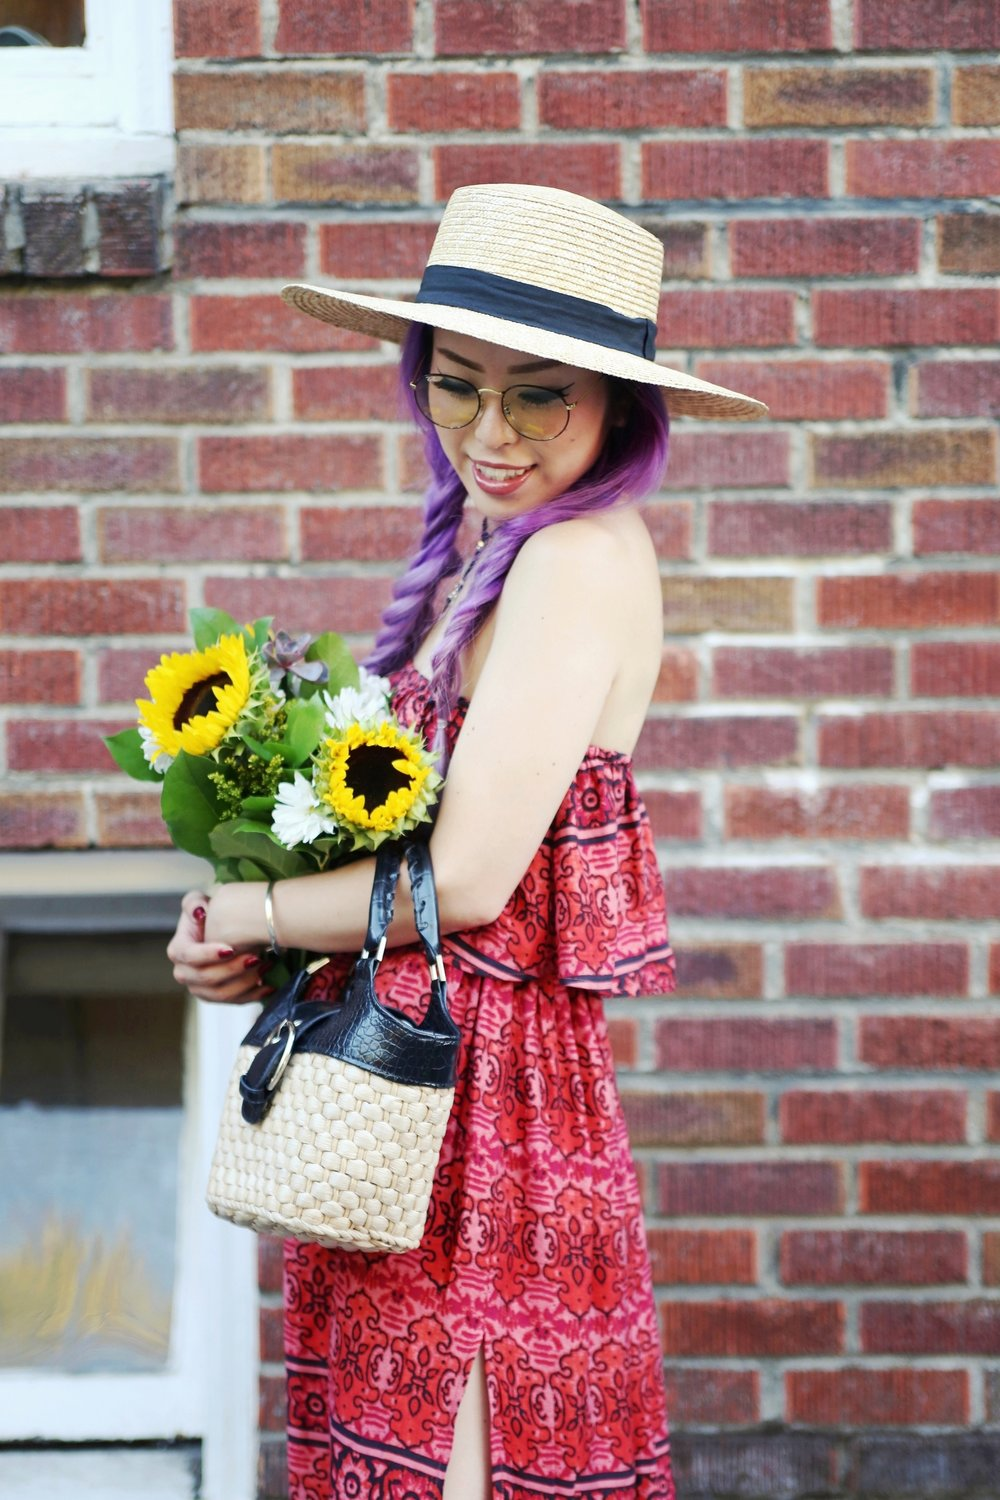 Target x Made by MINKPINK Women's Printed Off the Shoulder Ruffle Dress_American Eagle Straw Boater Hat_H&M Silver Pointed Toe Flats_Thrifted Straw Minibag_Choker_Rayban rounded retro sunglasses_Aikas Love Closet_Seattle fashion Blogger from Japan_Mermaid Hair_Lavender Hair_Braids Hairstyle_Sunflowers